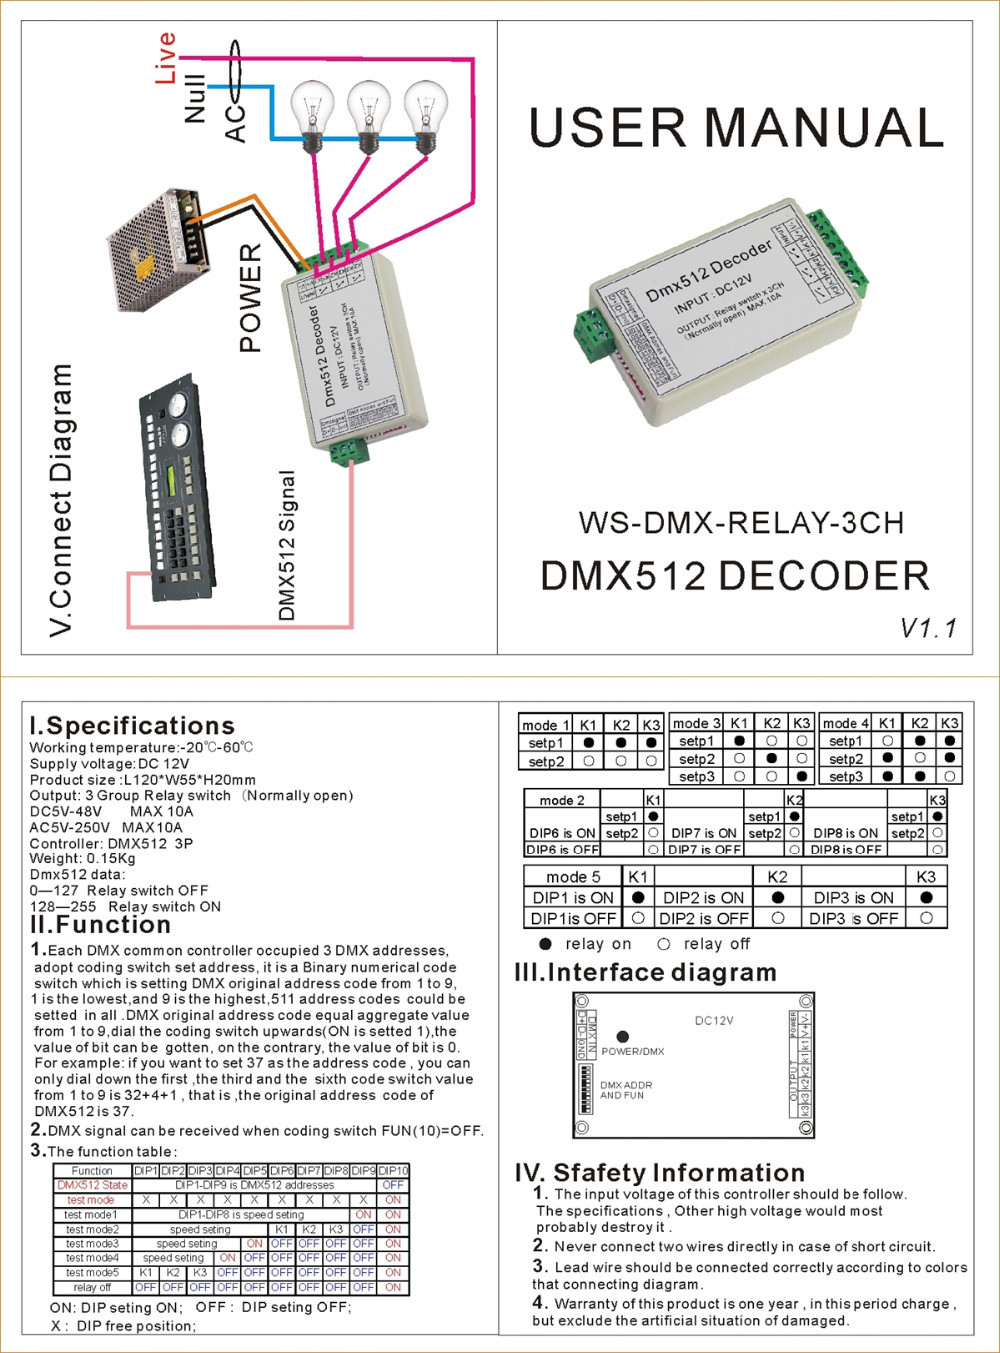 New_DMX_Controllers_WS_DMX_RELAY_3CH_1